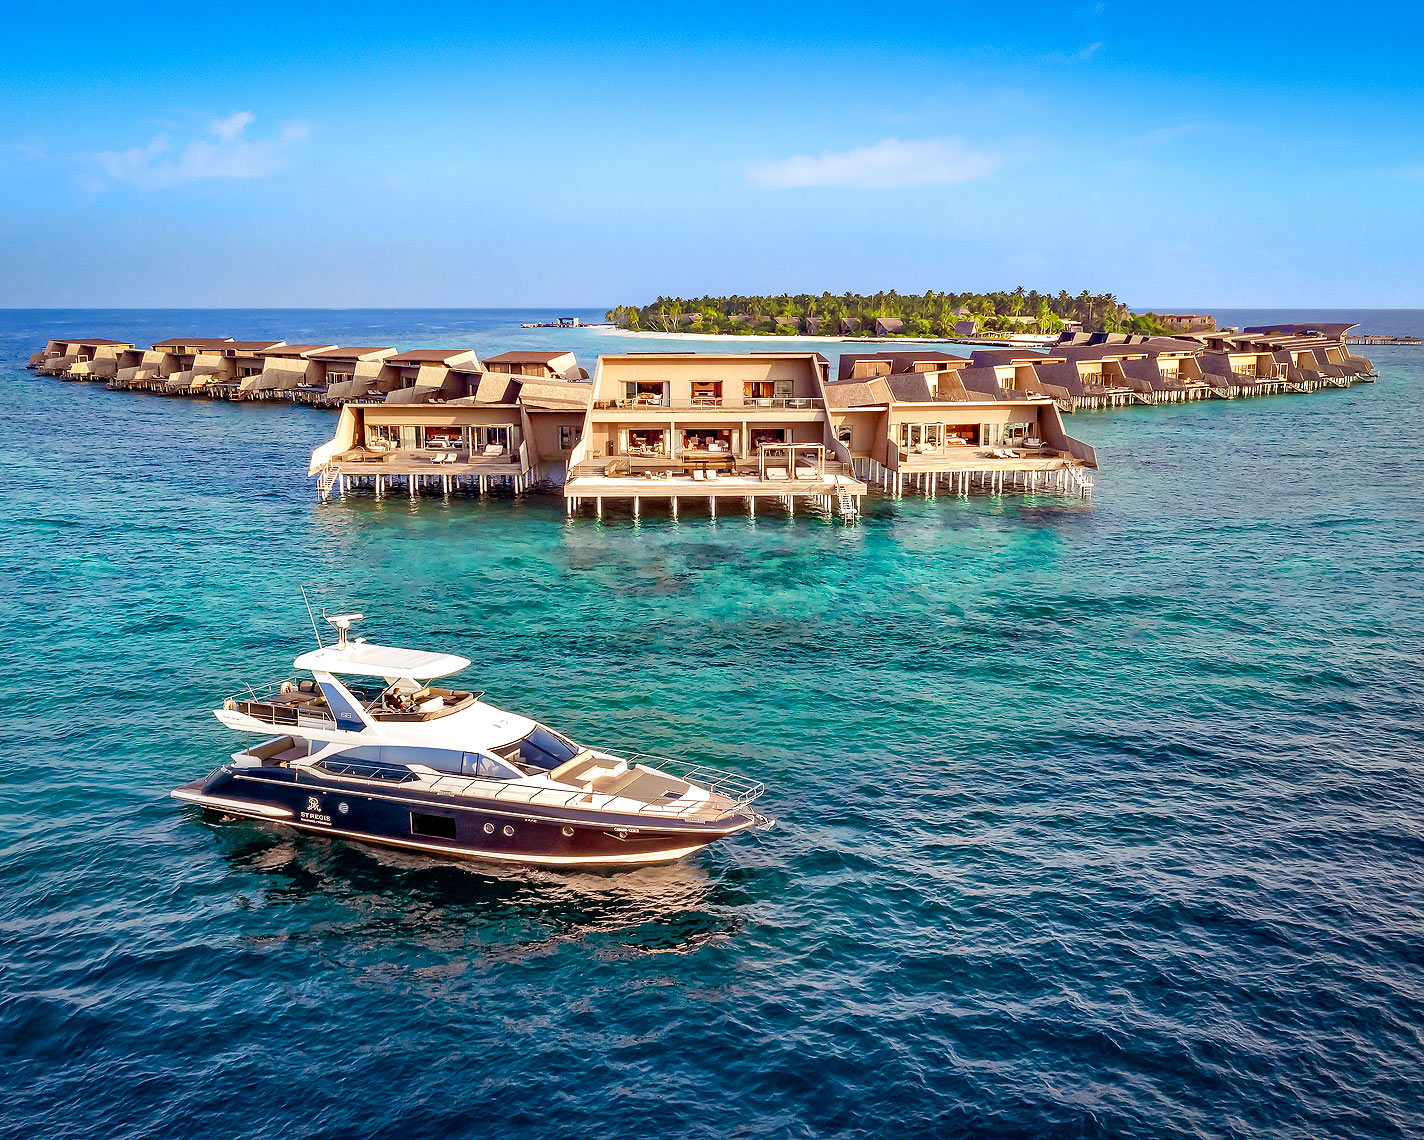 St_Regis_Maldives__Luxury_Yacht